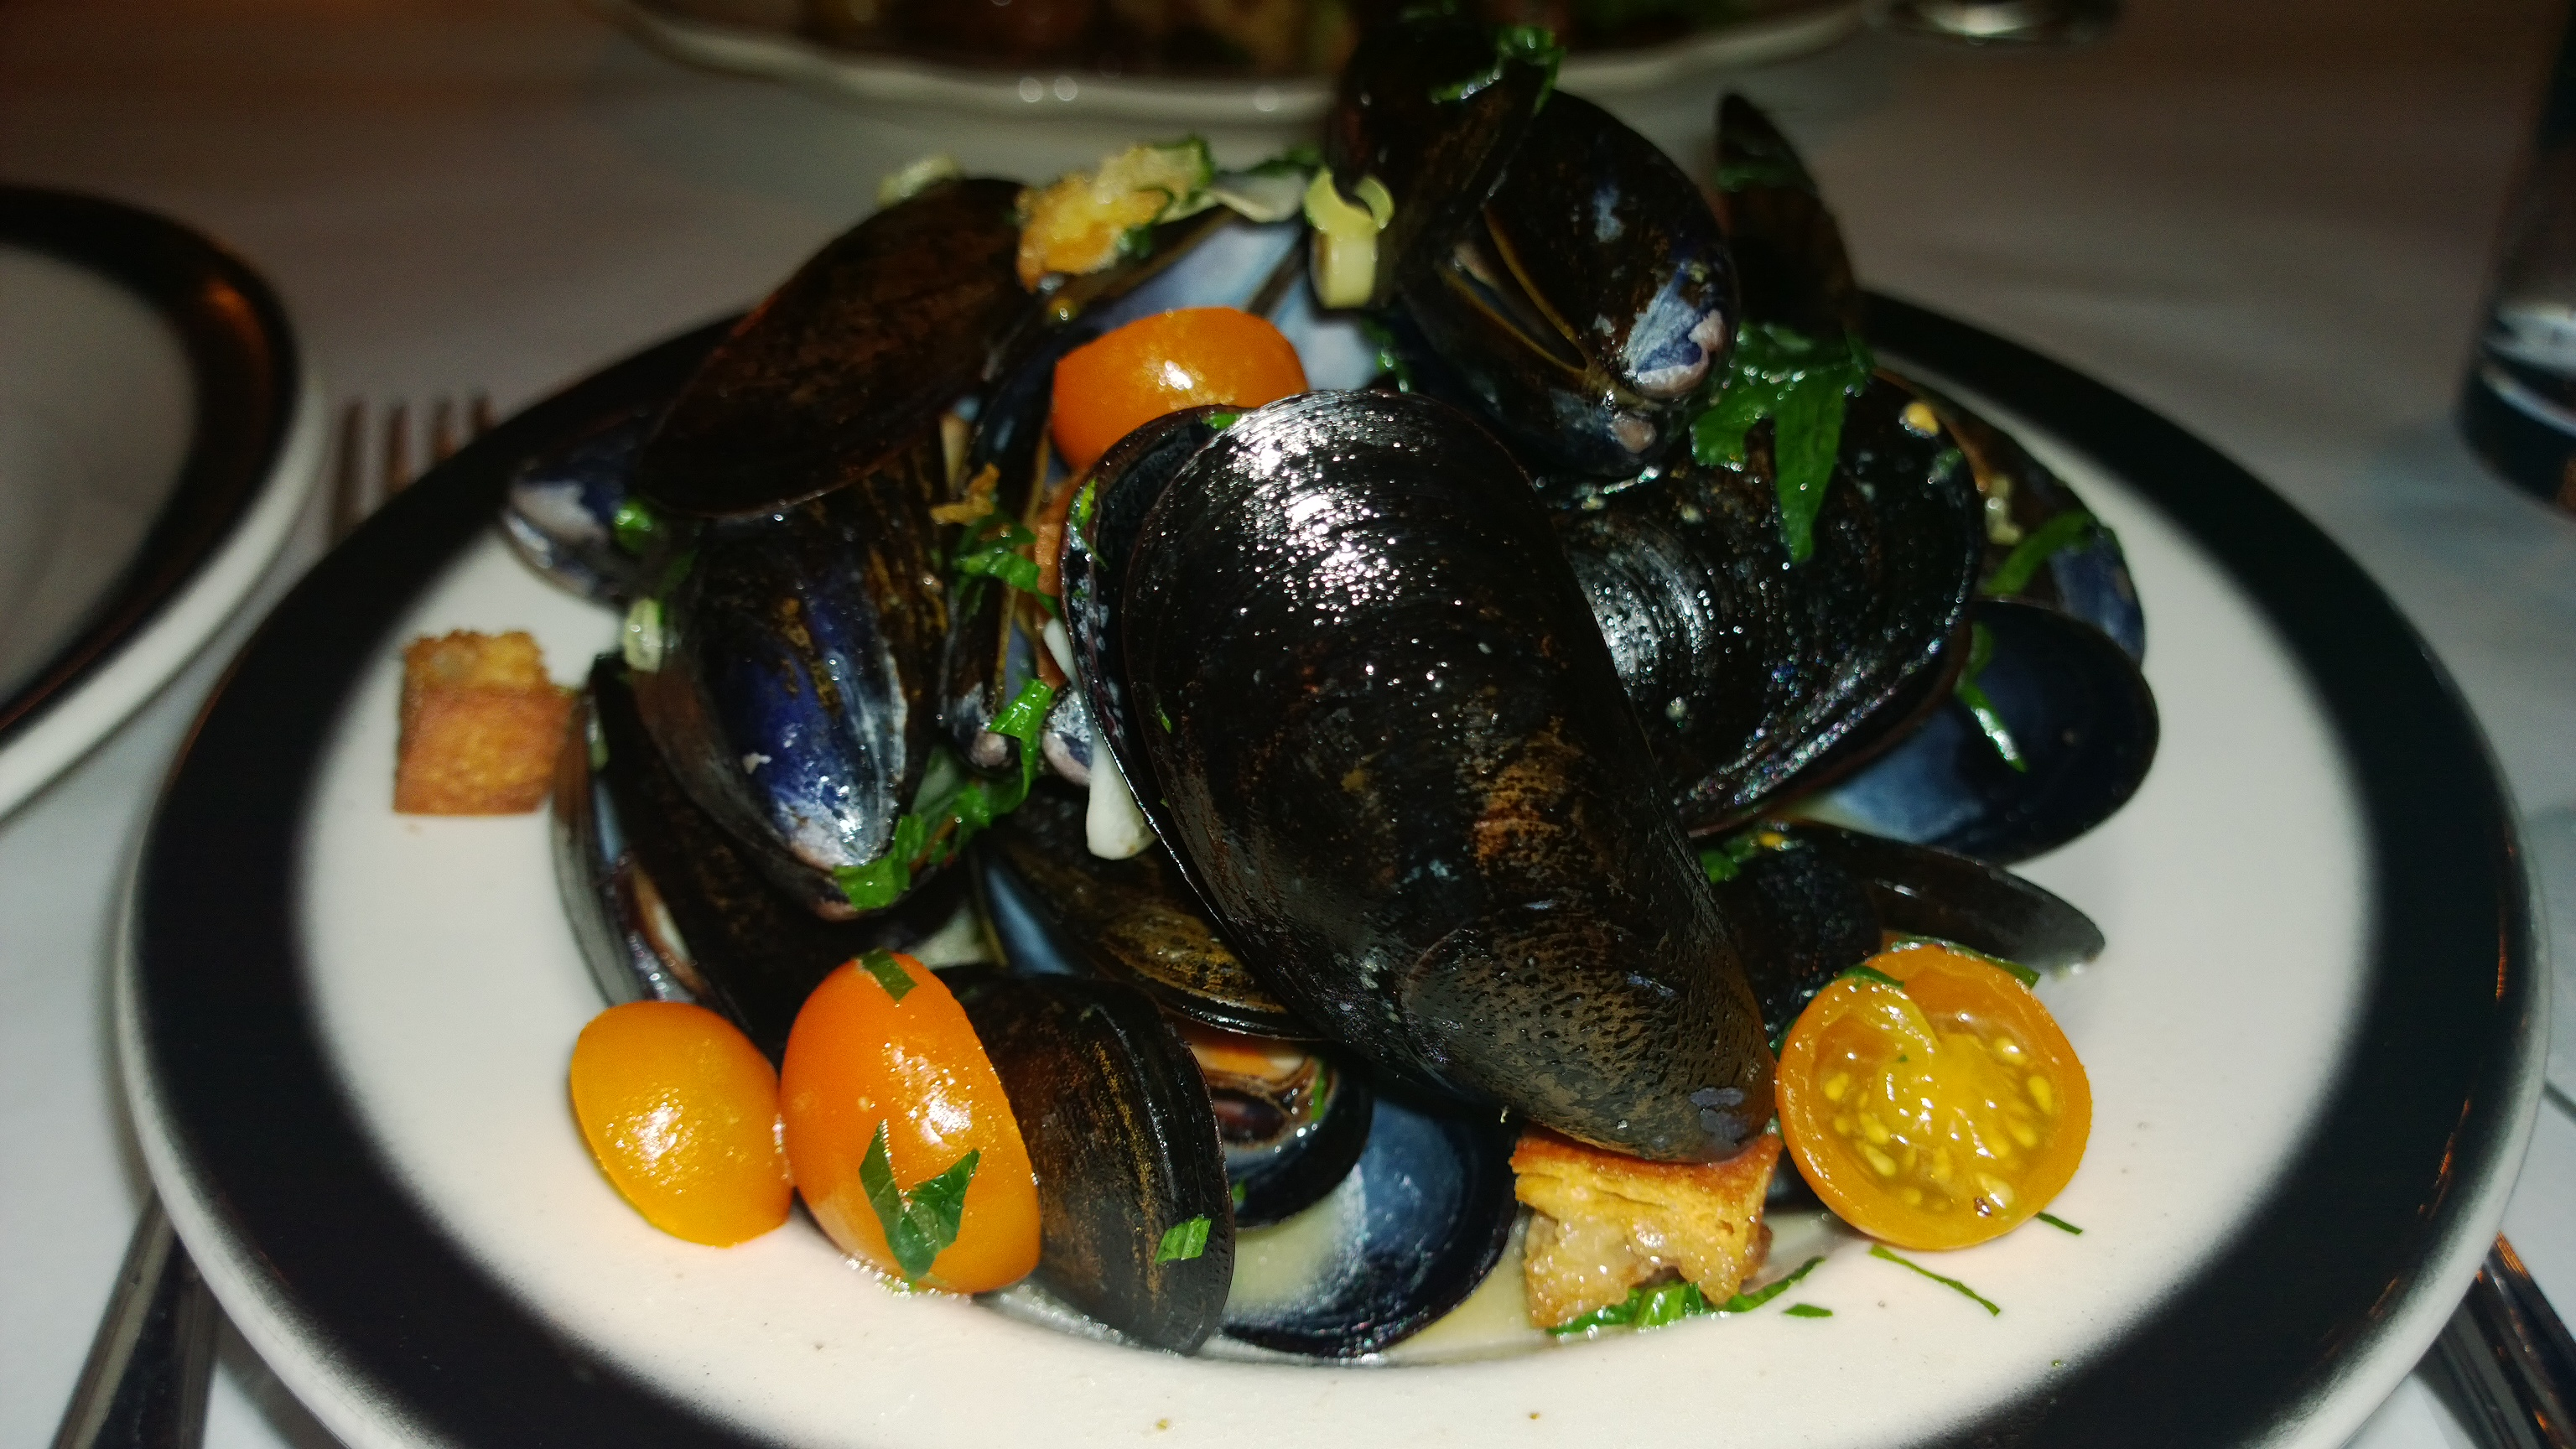 Bill's Food and Drink - Bouchot Mussel